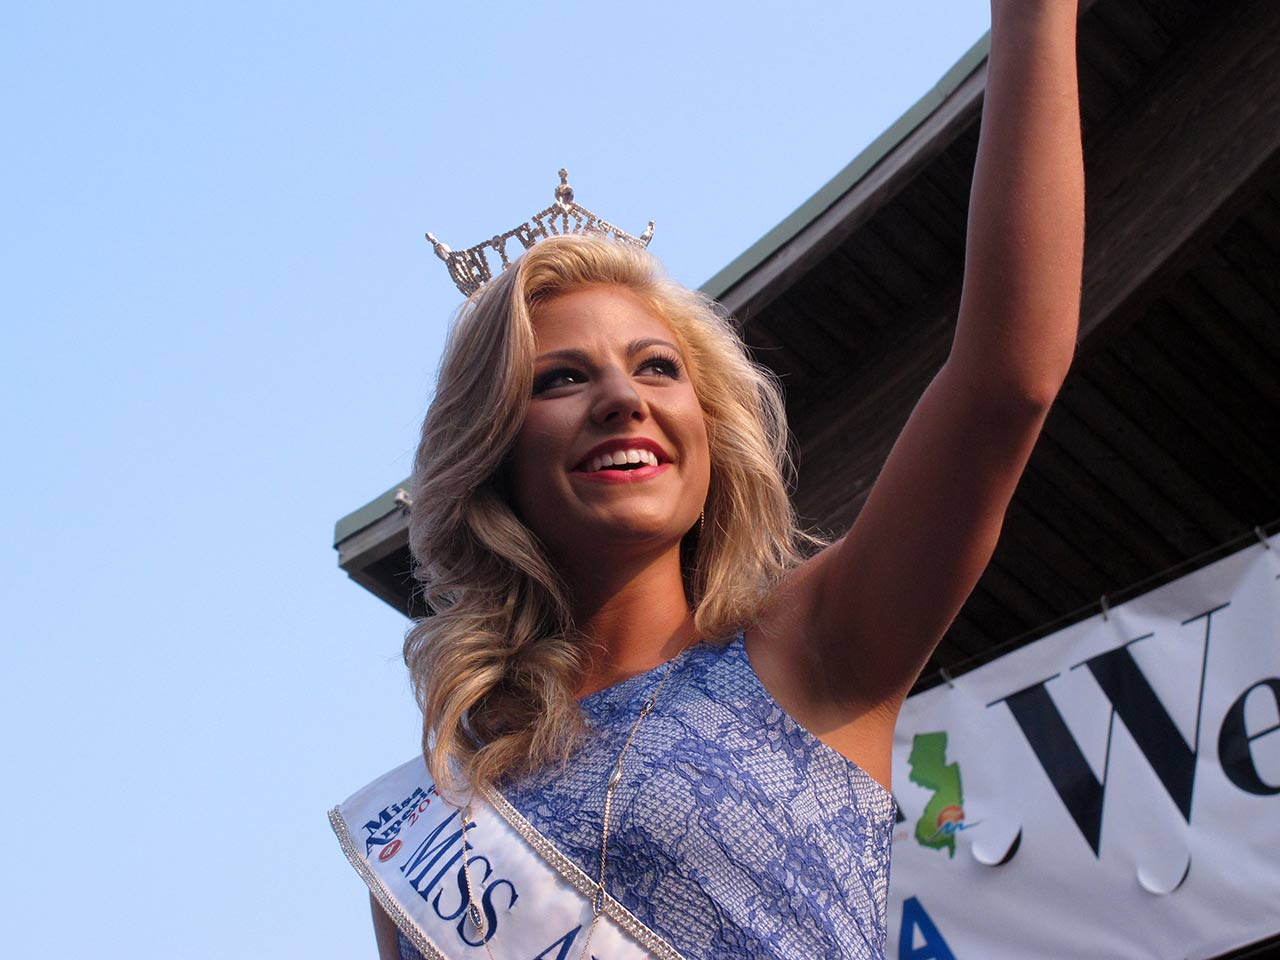 "<div class=""meta image-caption""><div class=""origin-logo origin-image ap""><span>AP</span></div><span class=""caption-text"">Miss Alabama Meg McGuffin at the traditional welcome ceremony on the Atlantic City Boardwalk on Tuesday, Sept. 1, 2015. (AP Photo/Wayne Parry)</span></div>"